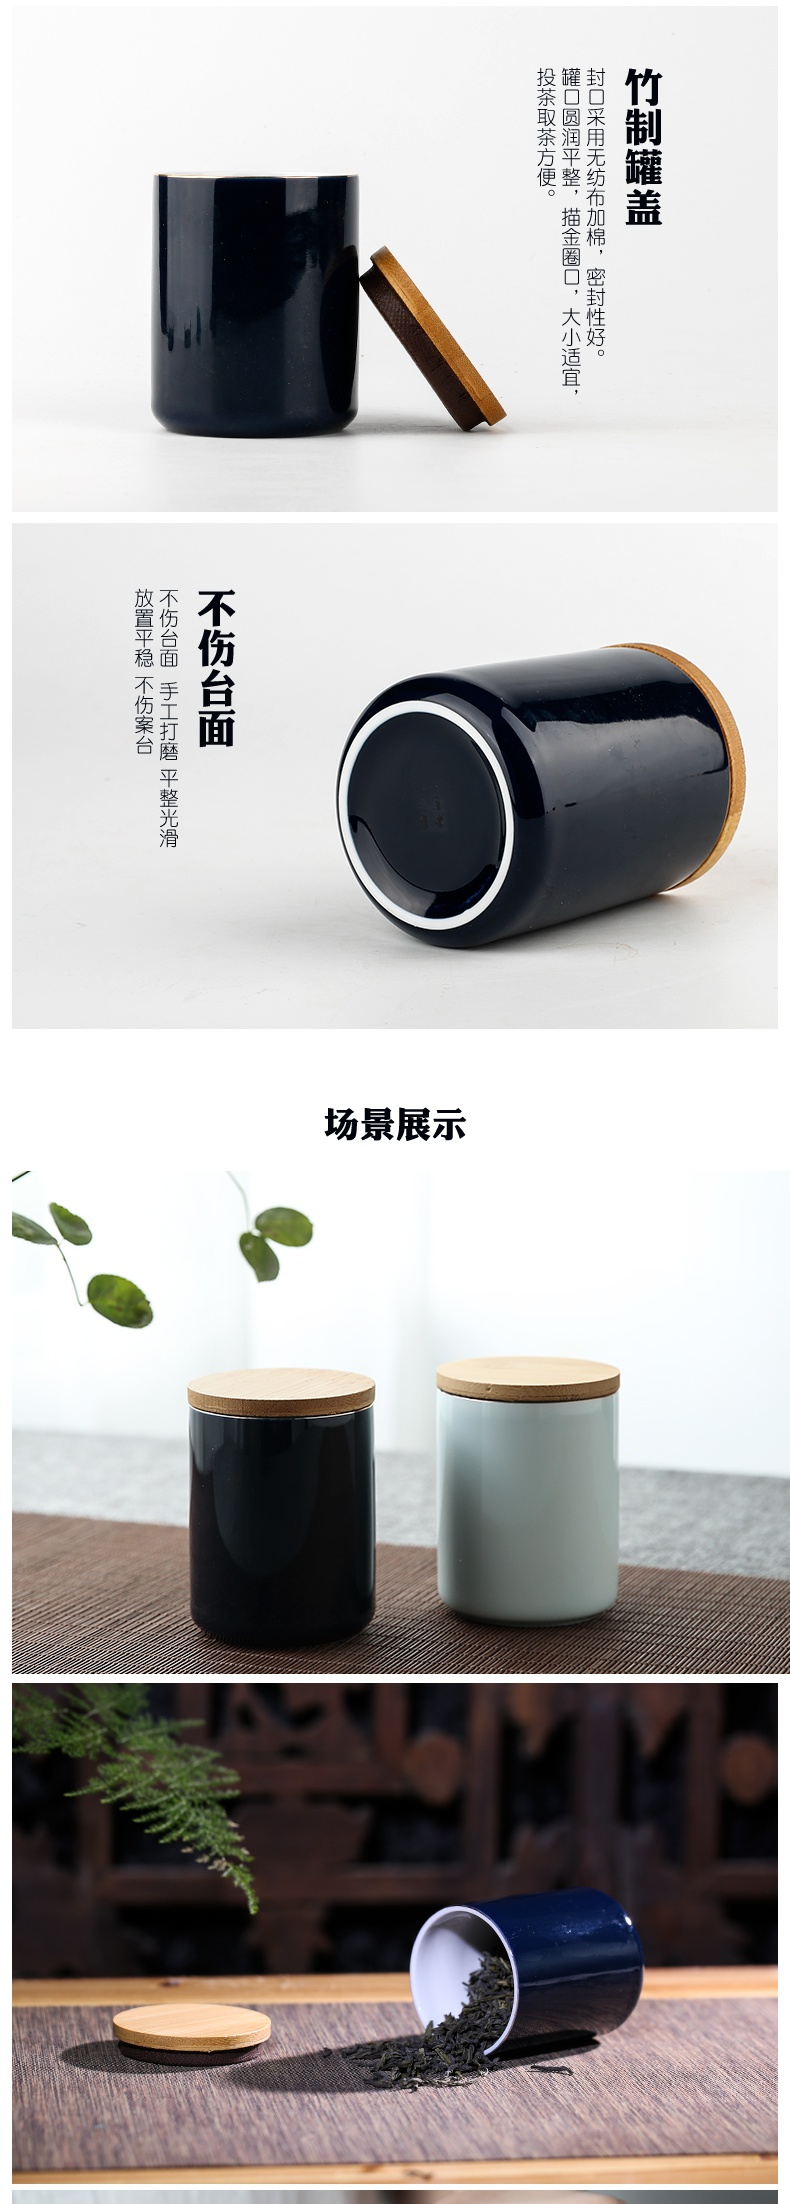 The Poly real boutique scene. Celadon caddy fixings jingdezhen ceramic contracted seal pot portable travel POTS storage medium